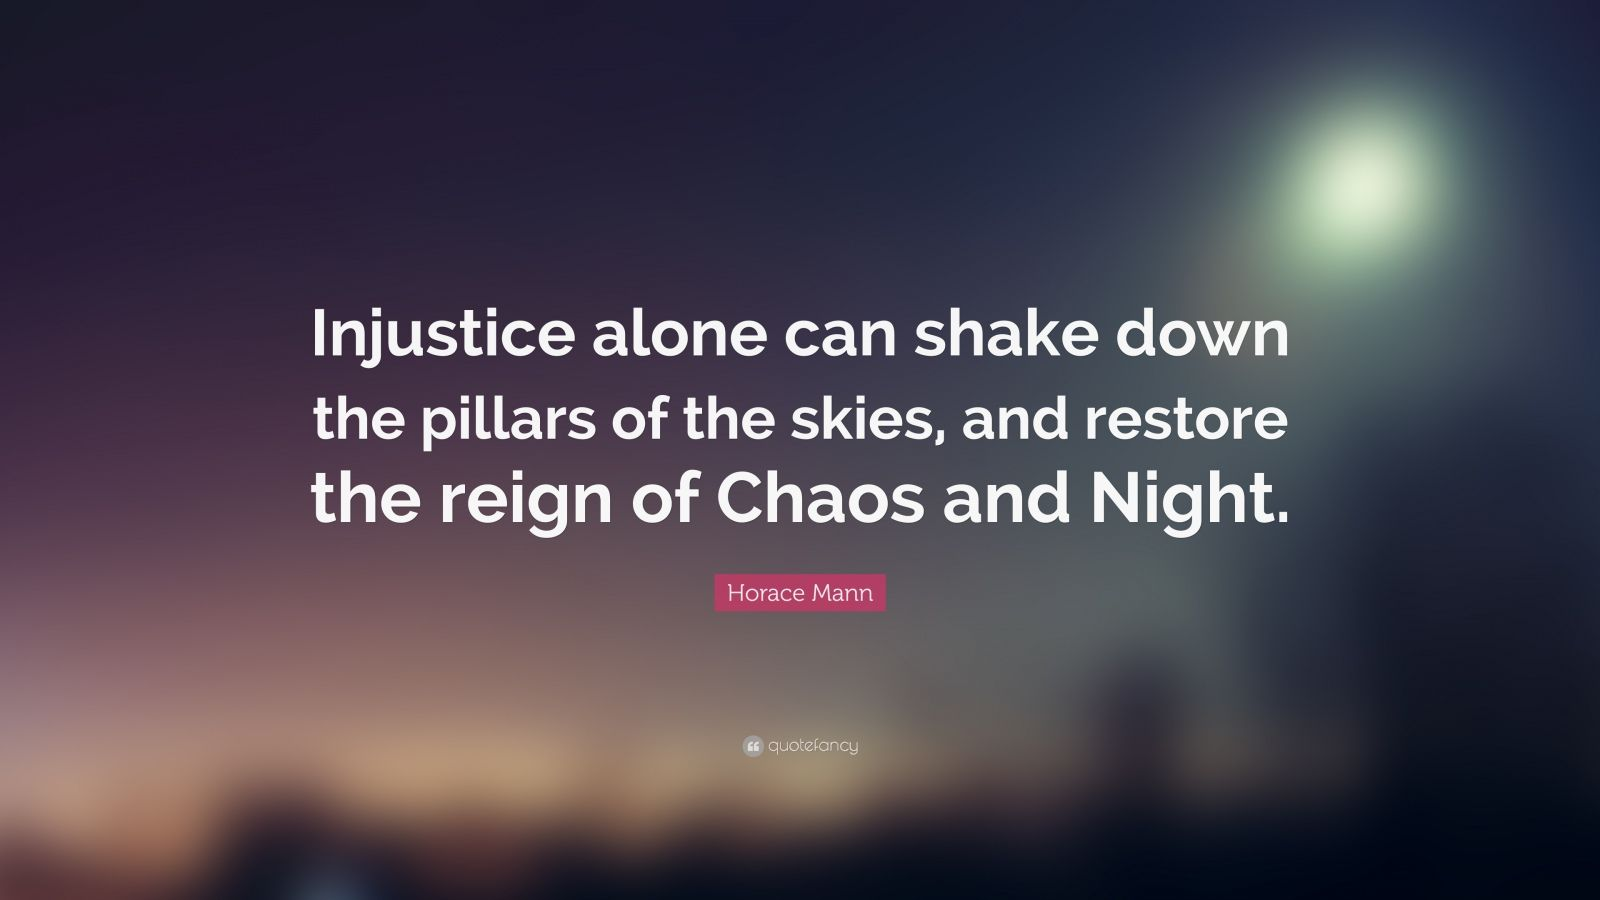 """Horace Mann Quote: """"Injustice alone can shake down the pillars of the skies, and restore the reign of Chaos and Night."""""""